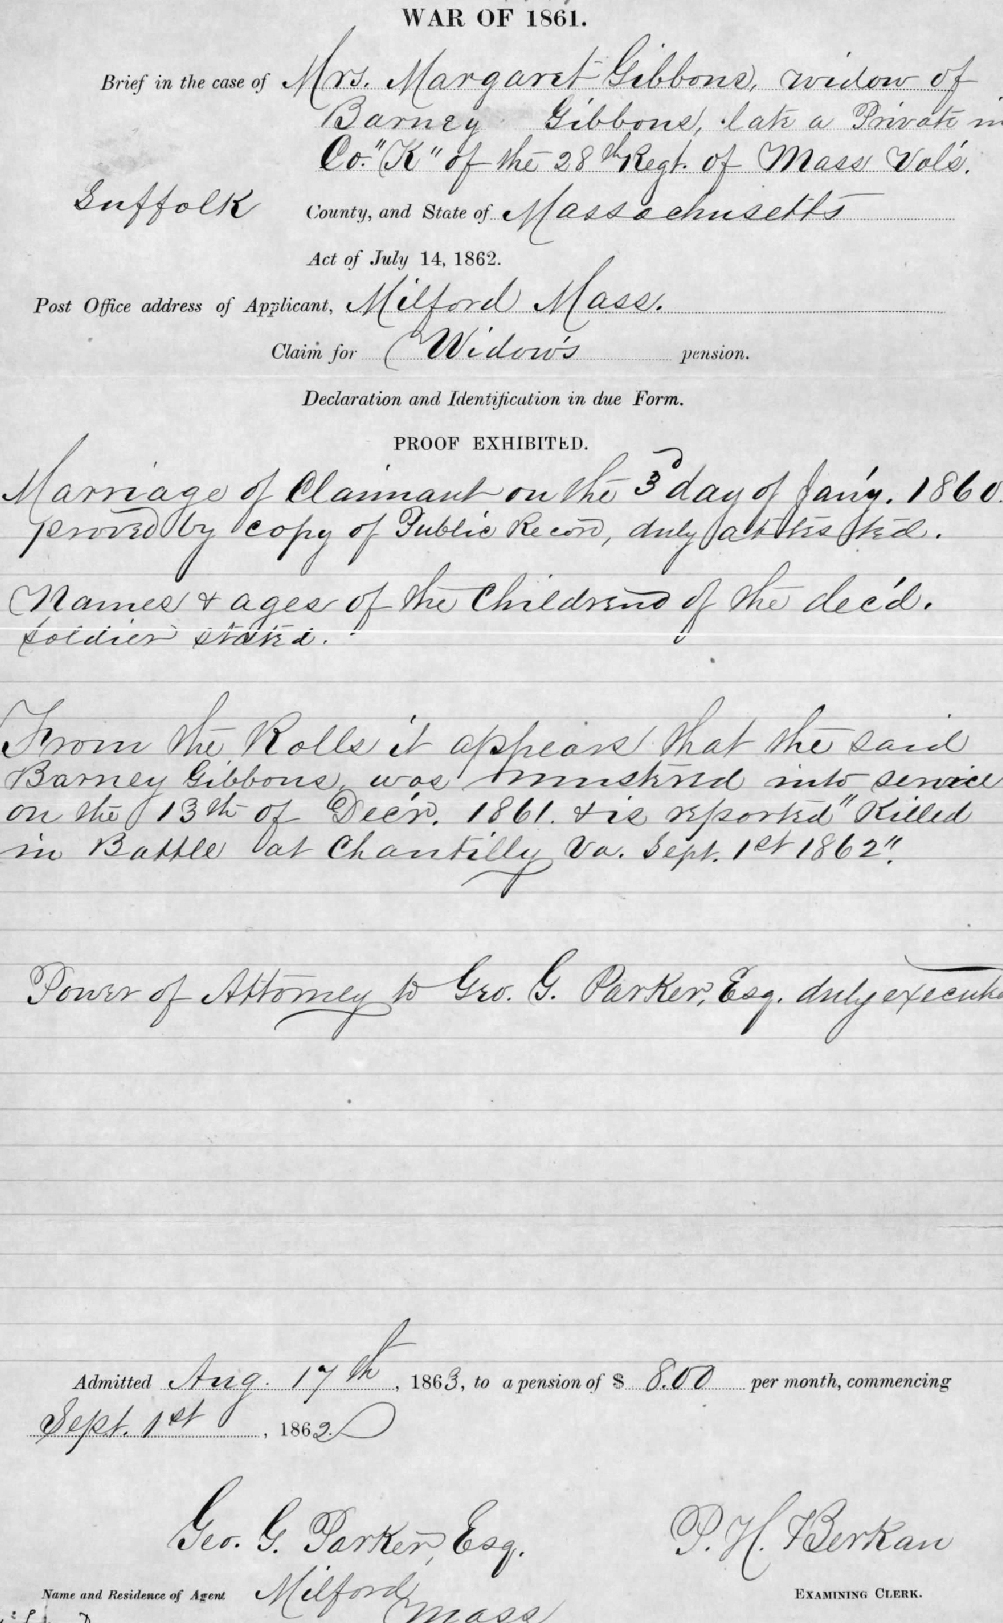 Pension application for the widow of Barney Gibbons of Company K. She would have received the news in September that her husband had been killed at the Battle of Chantilly.